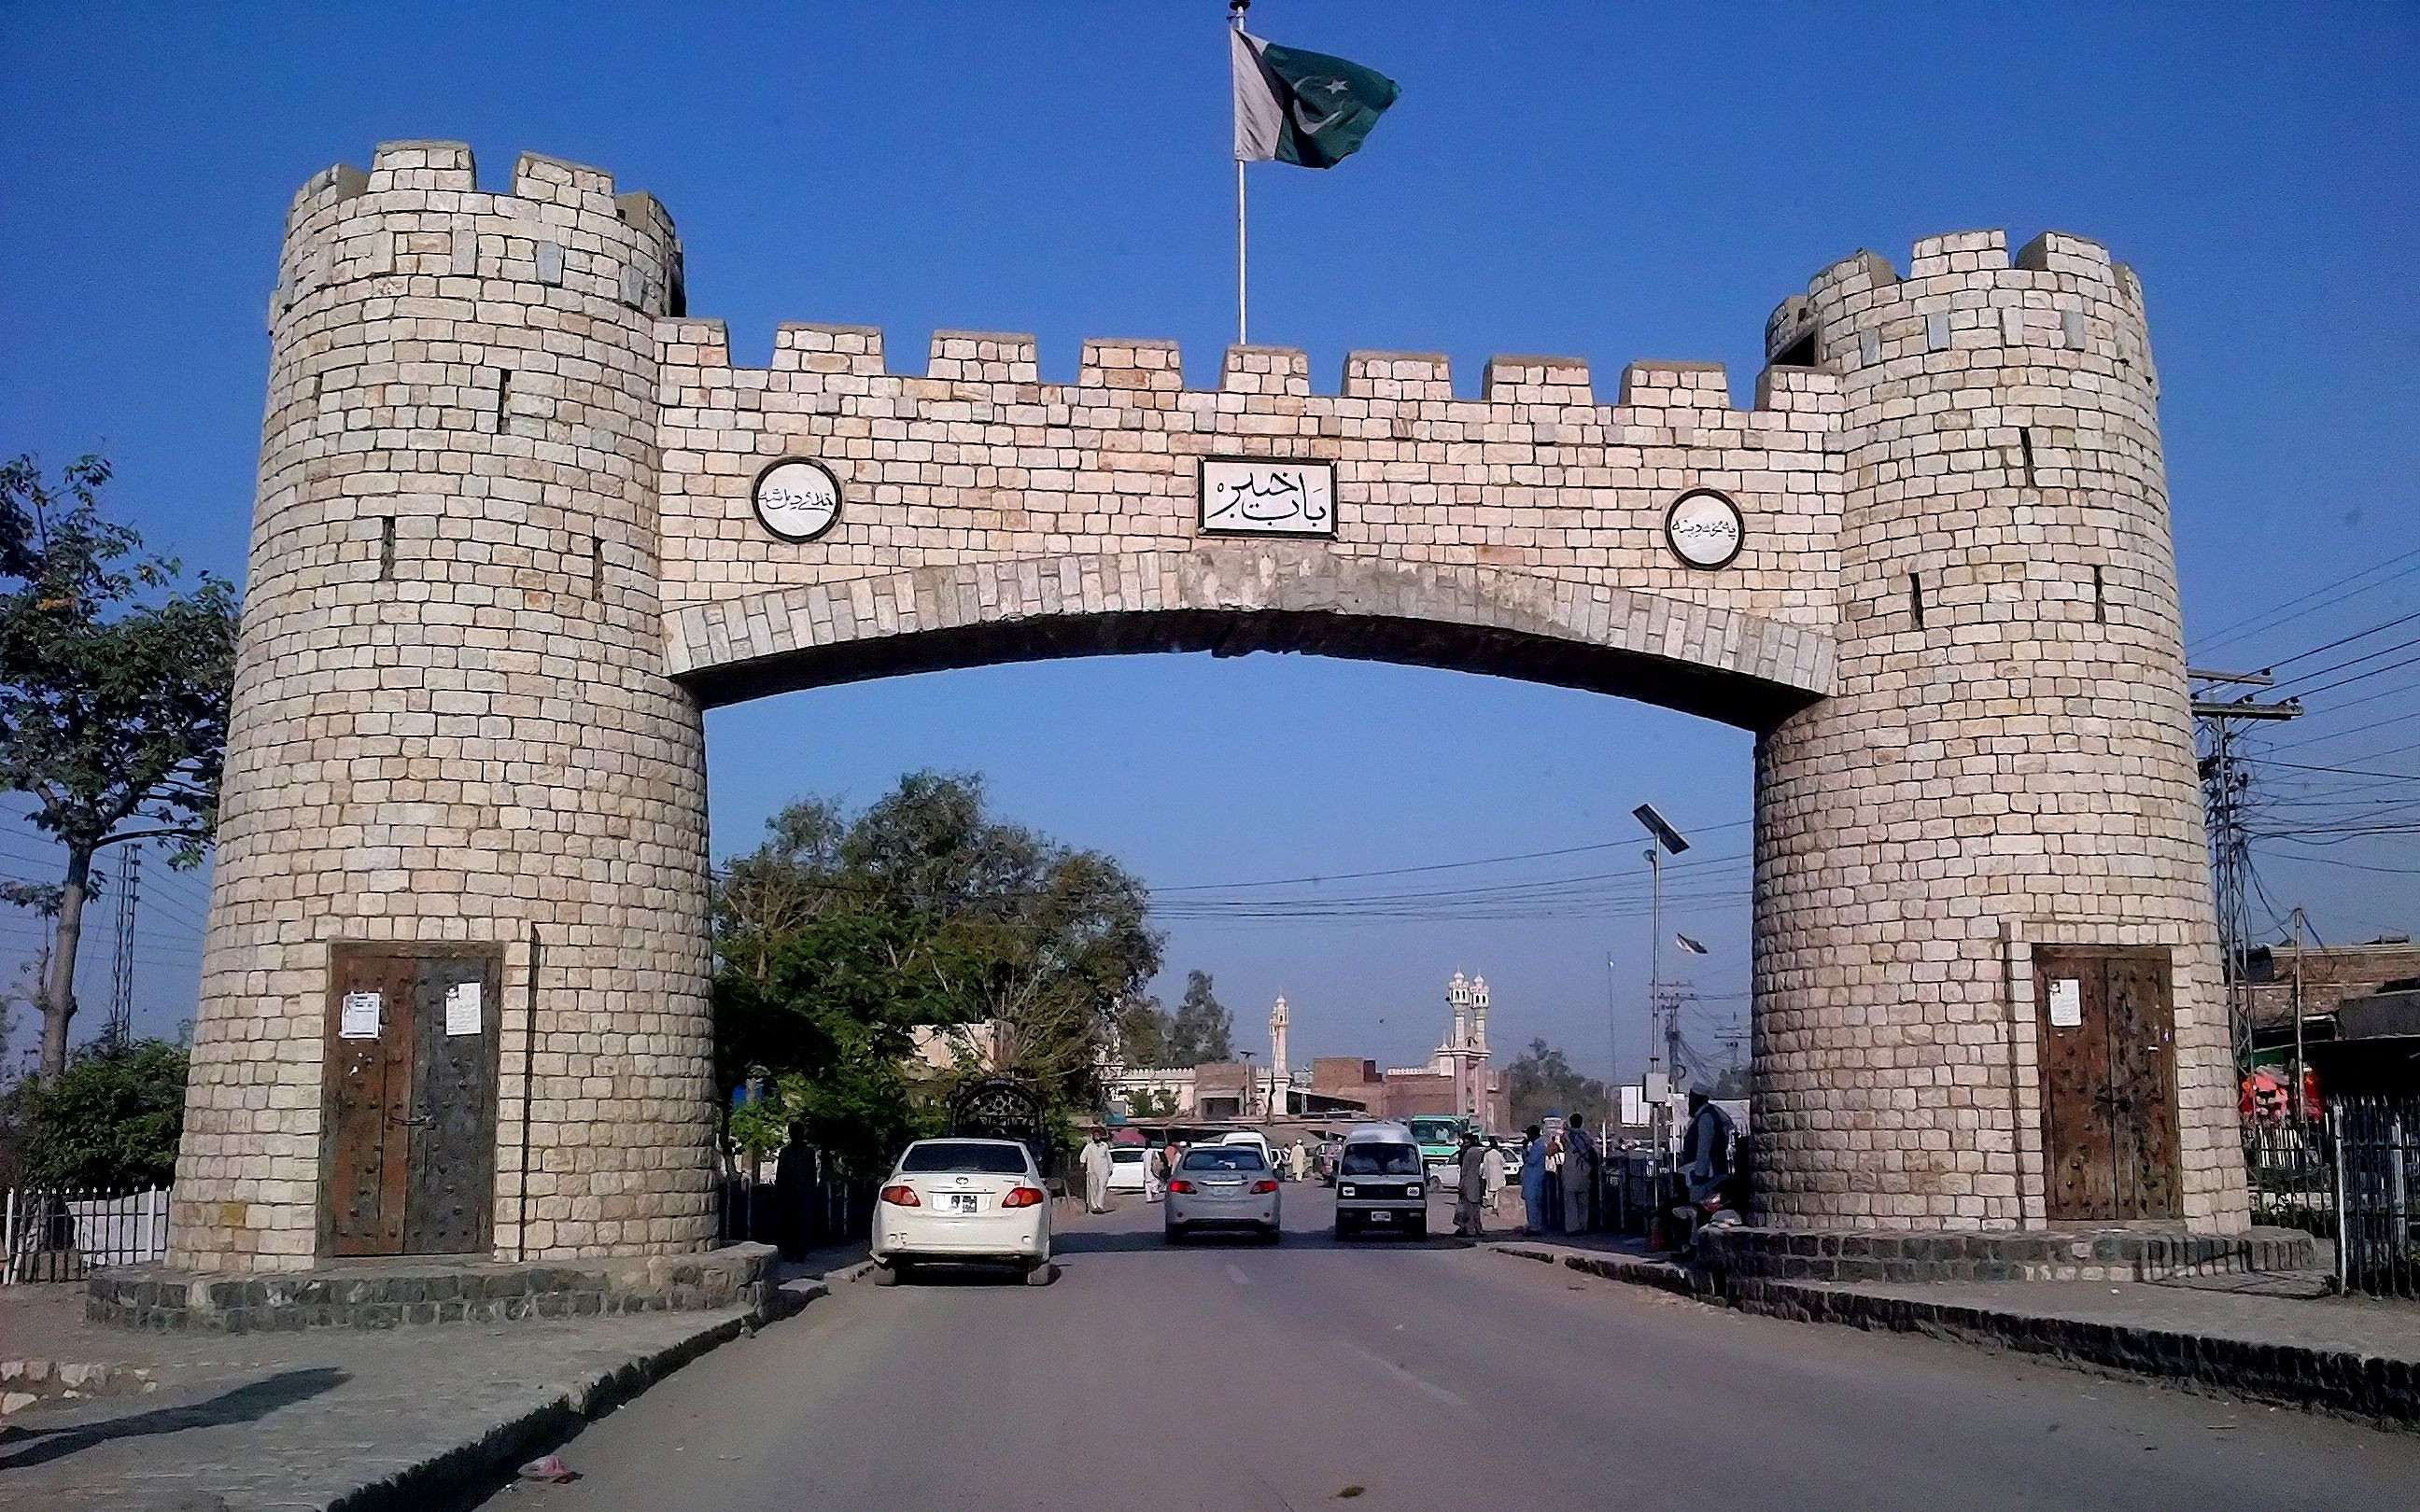 The iconic symbol for Khyber Pass, Baab e Khyber